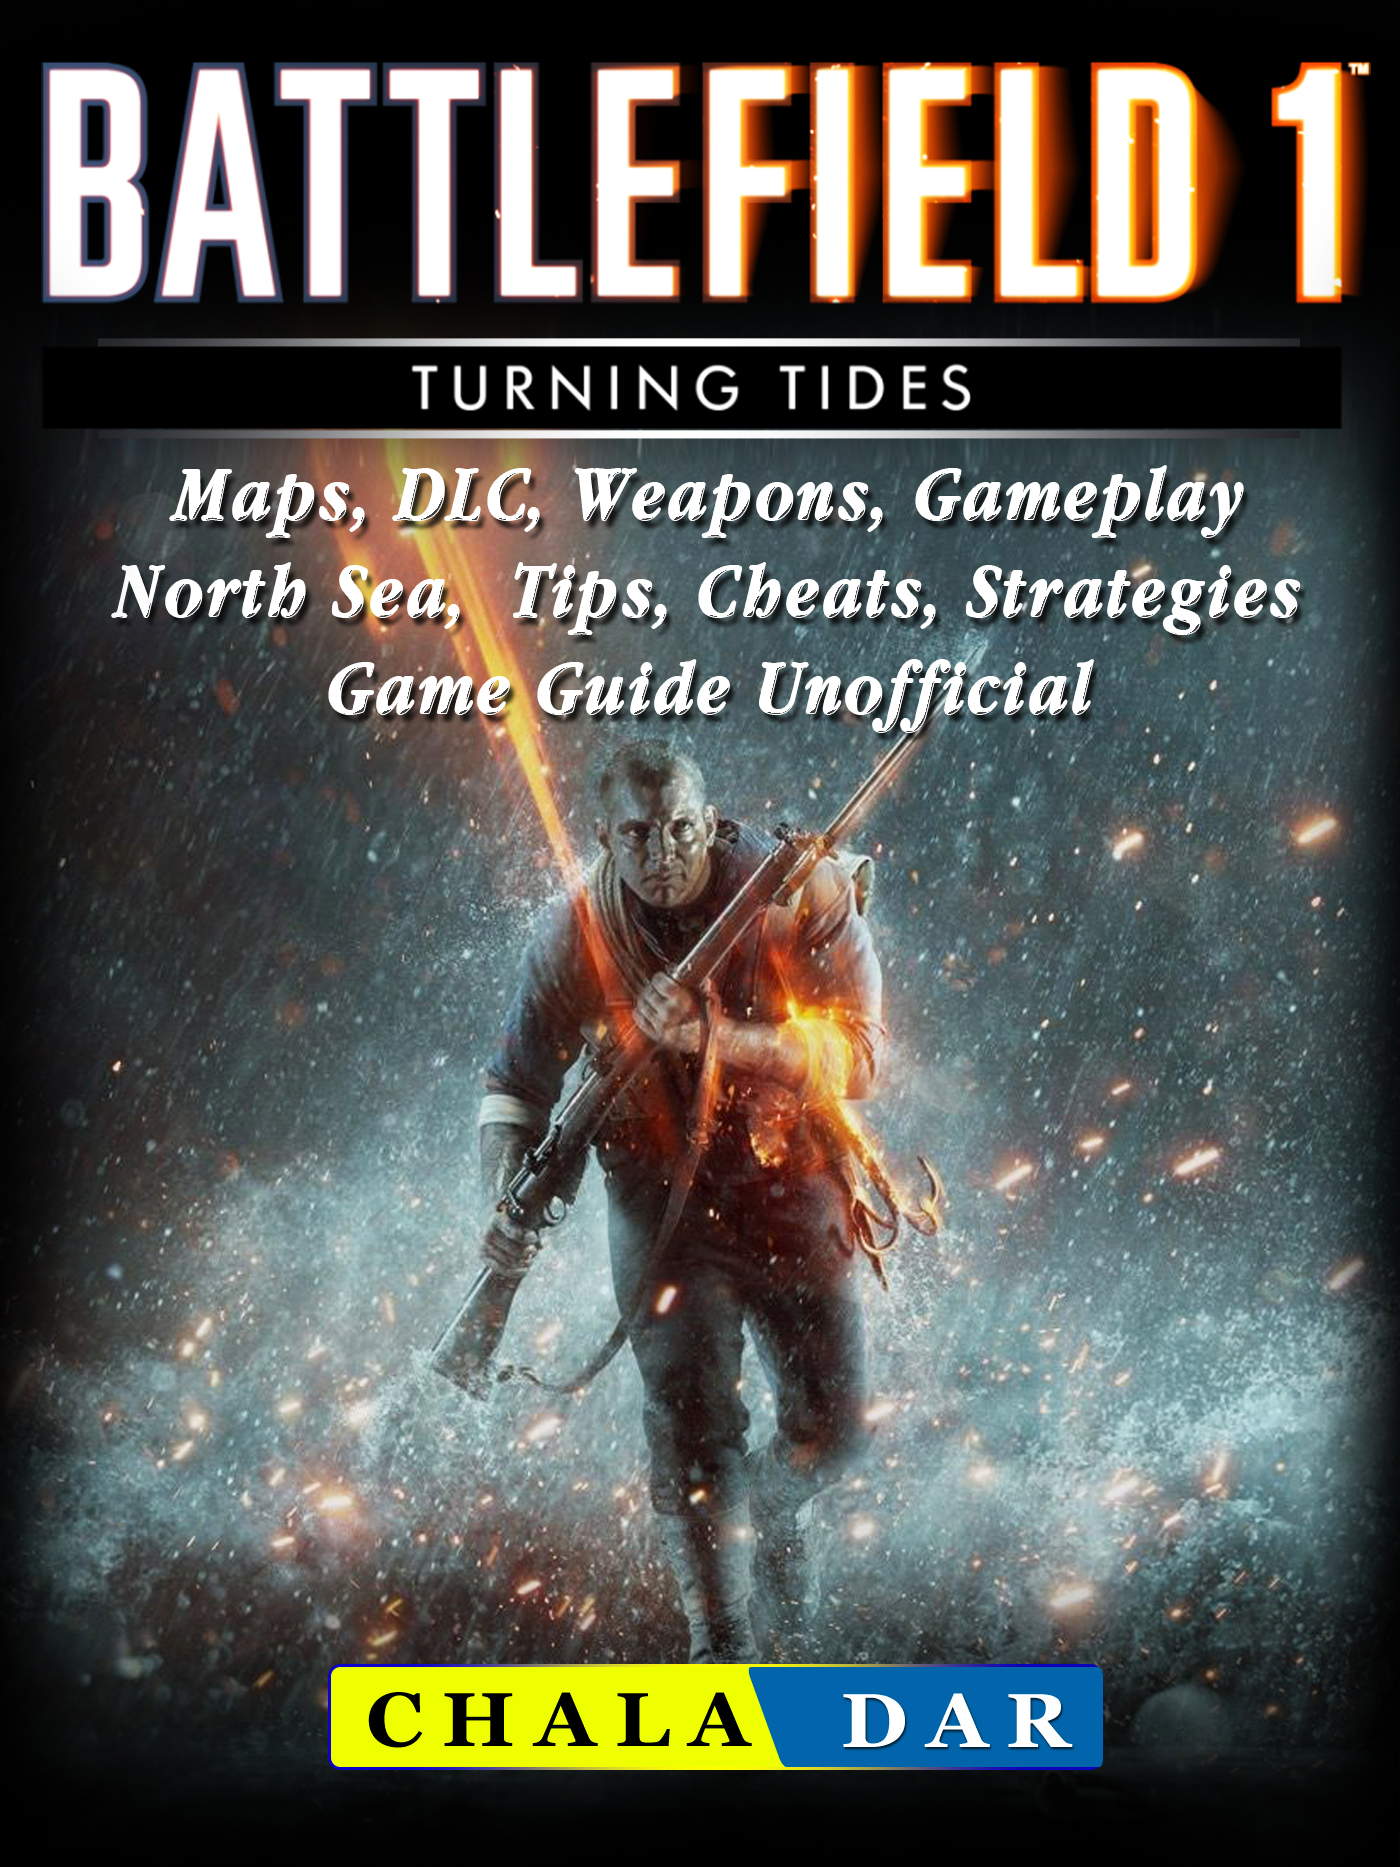 Battlefield 1 Turning Tides, Maps, DLC, Weapons, Gameplay, North Sea, Tips, Cheats, Strategies, Game Guide Unofficial